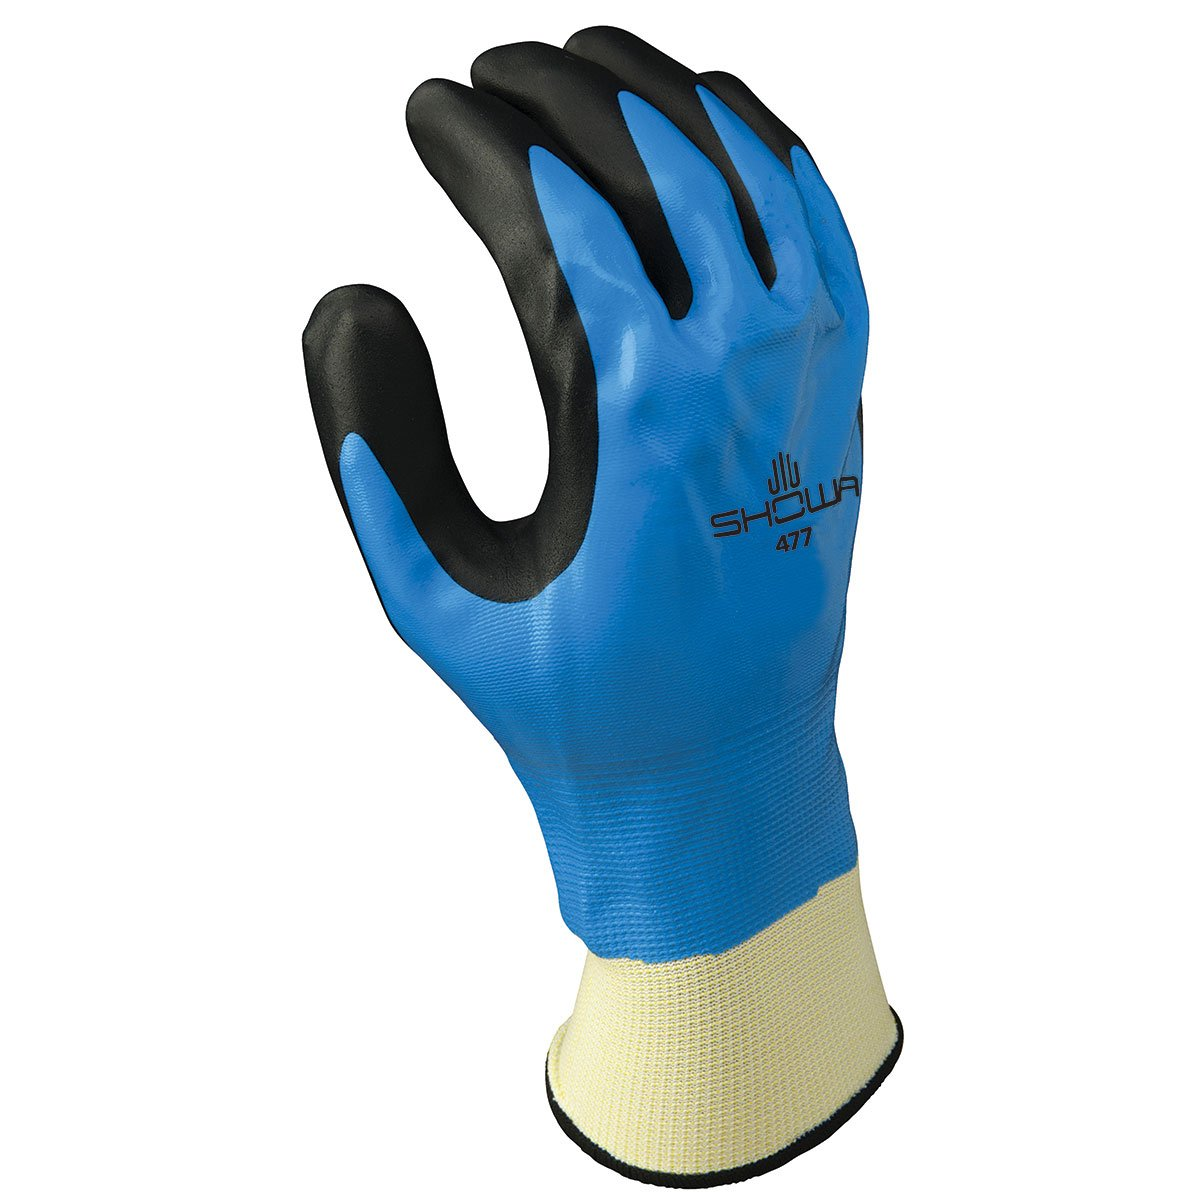 SHOWA 477L-08 477 Foam Nitrile Insulated Winter Work Glove, Nitrile, Large, Blue (Pack of 12)